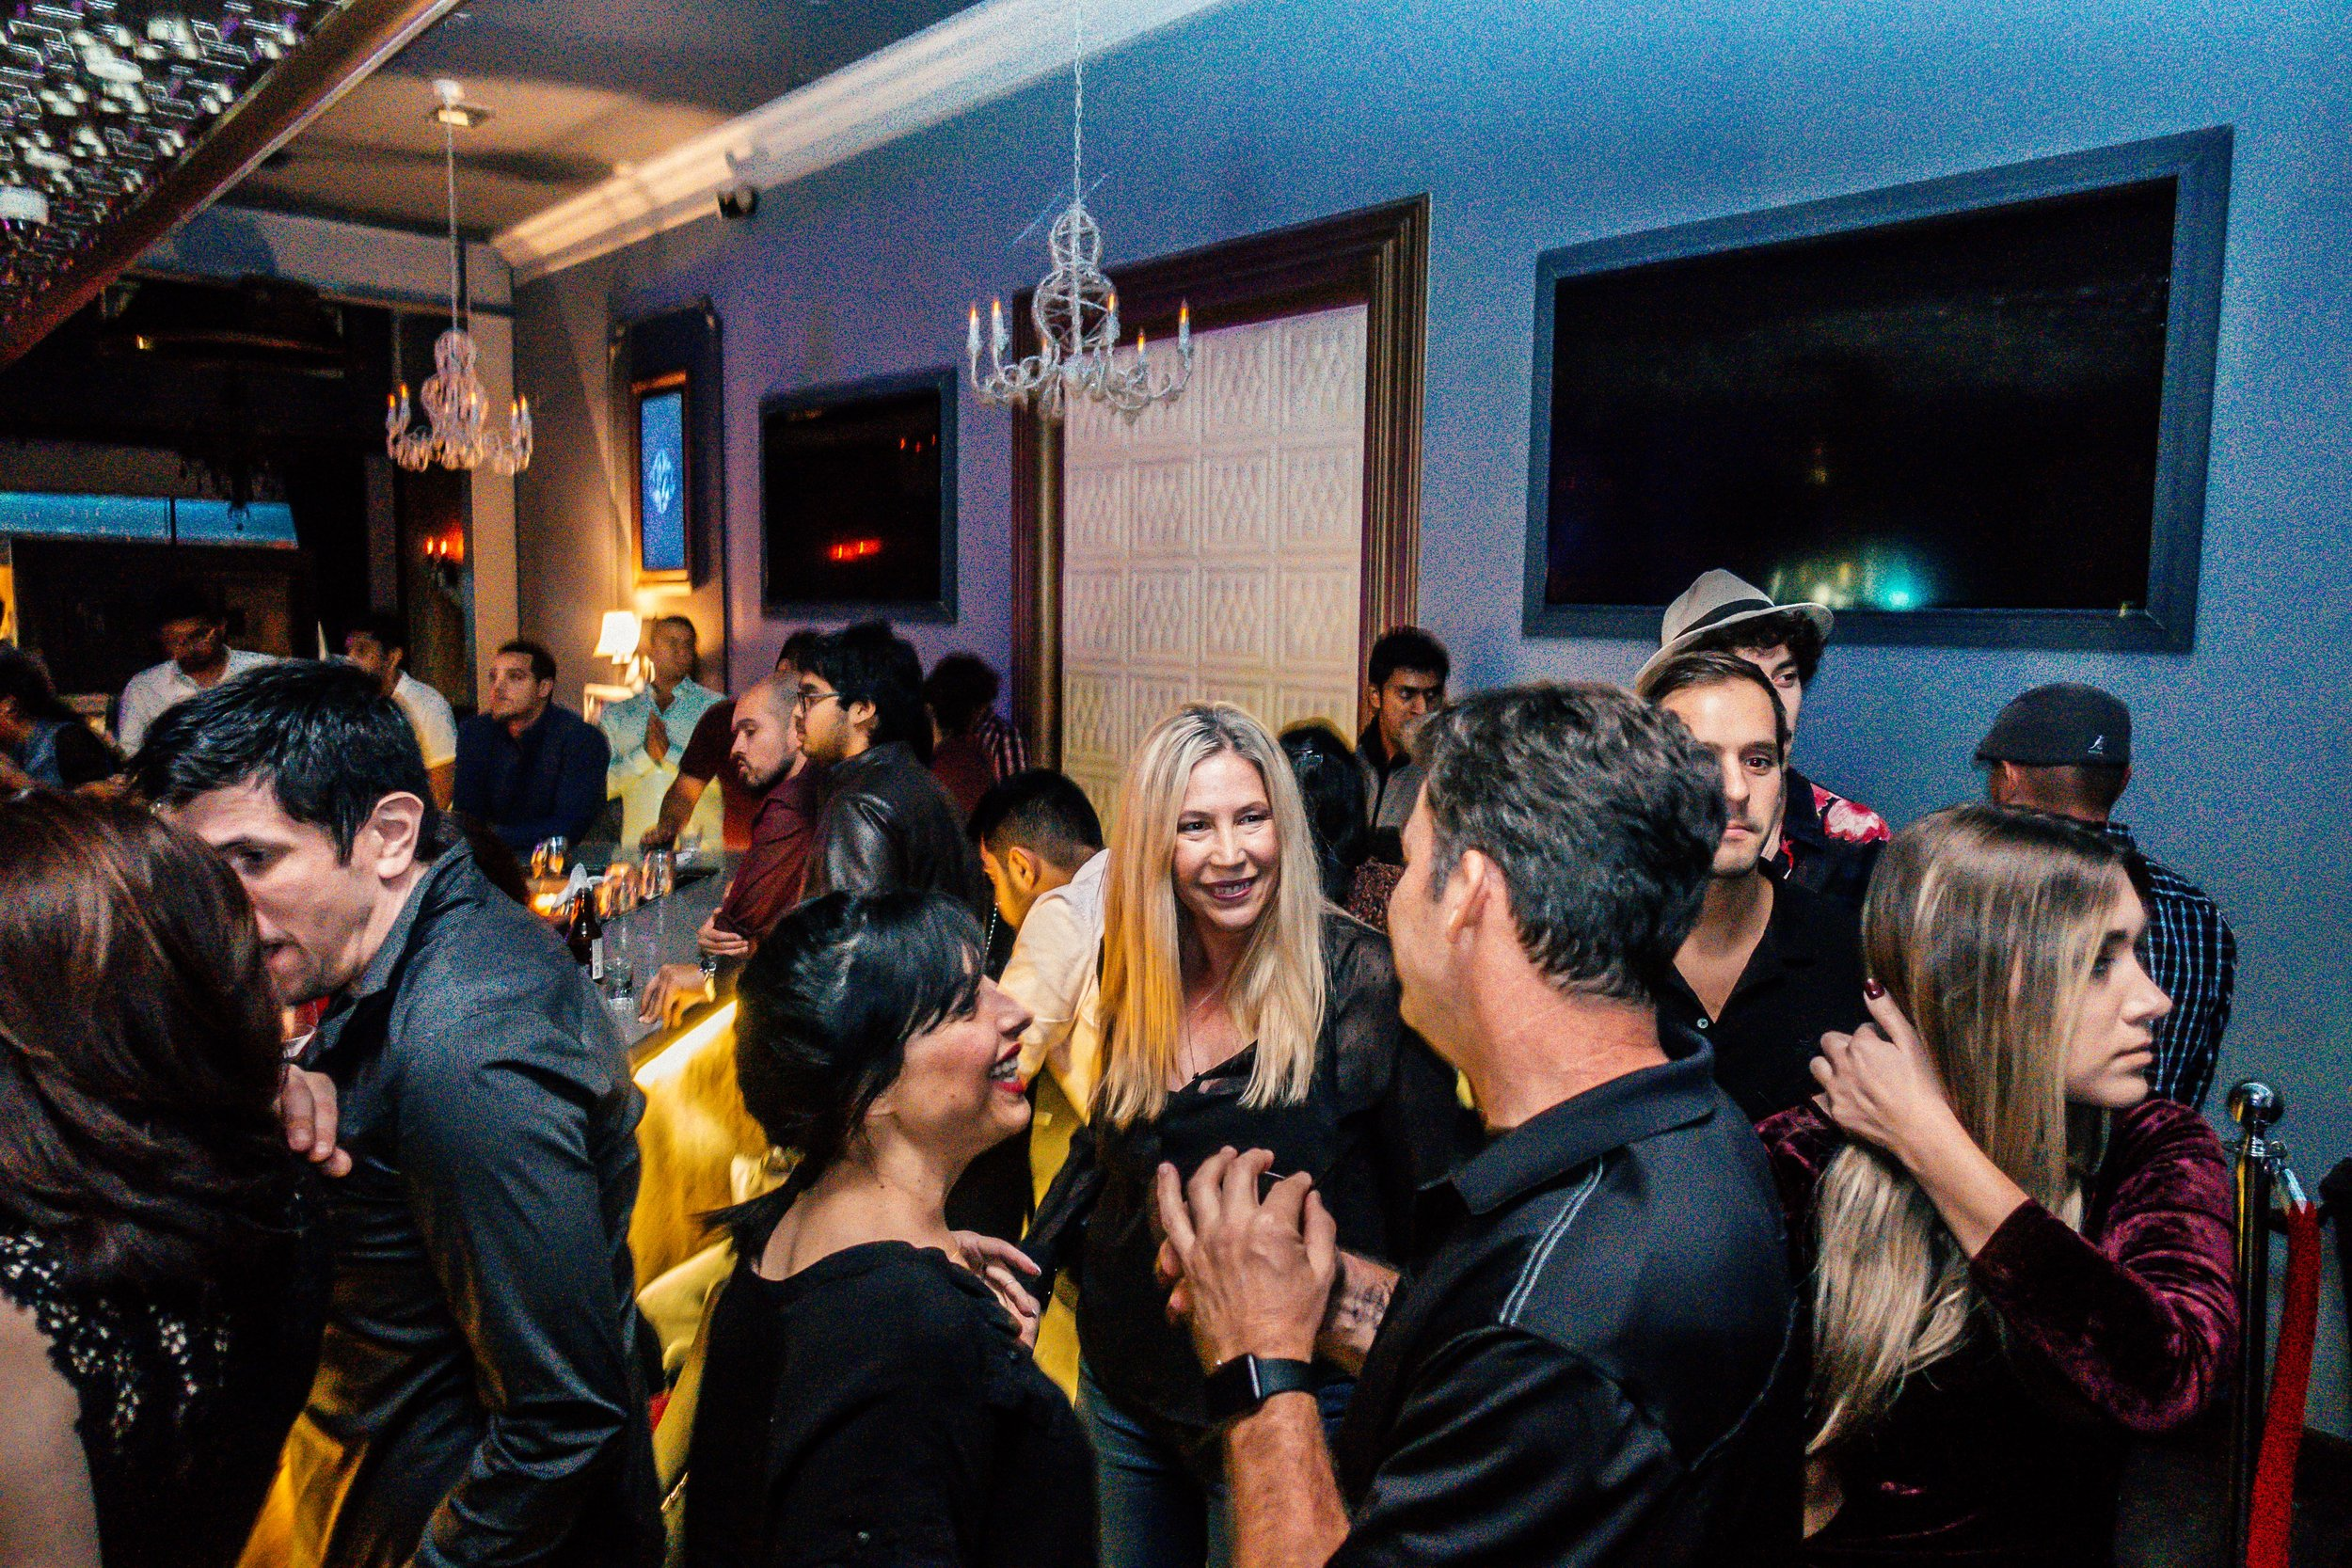 COMPLIMENTARY BOTTLE OF BUBBLY FOR GROUPS OF 8 OR MORE ON FRIDAY NIGHTS - PROMO CODE: 8COMP*Promo codes not applicable to existing bookings or inquires.